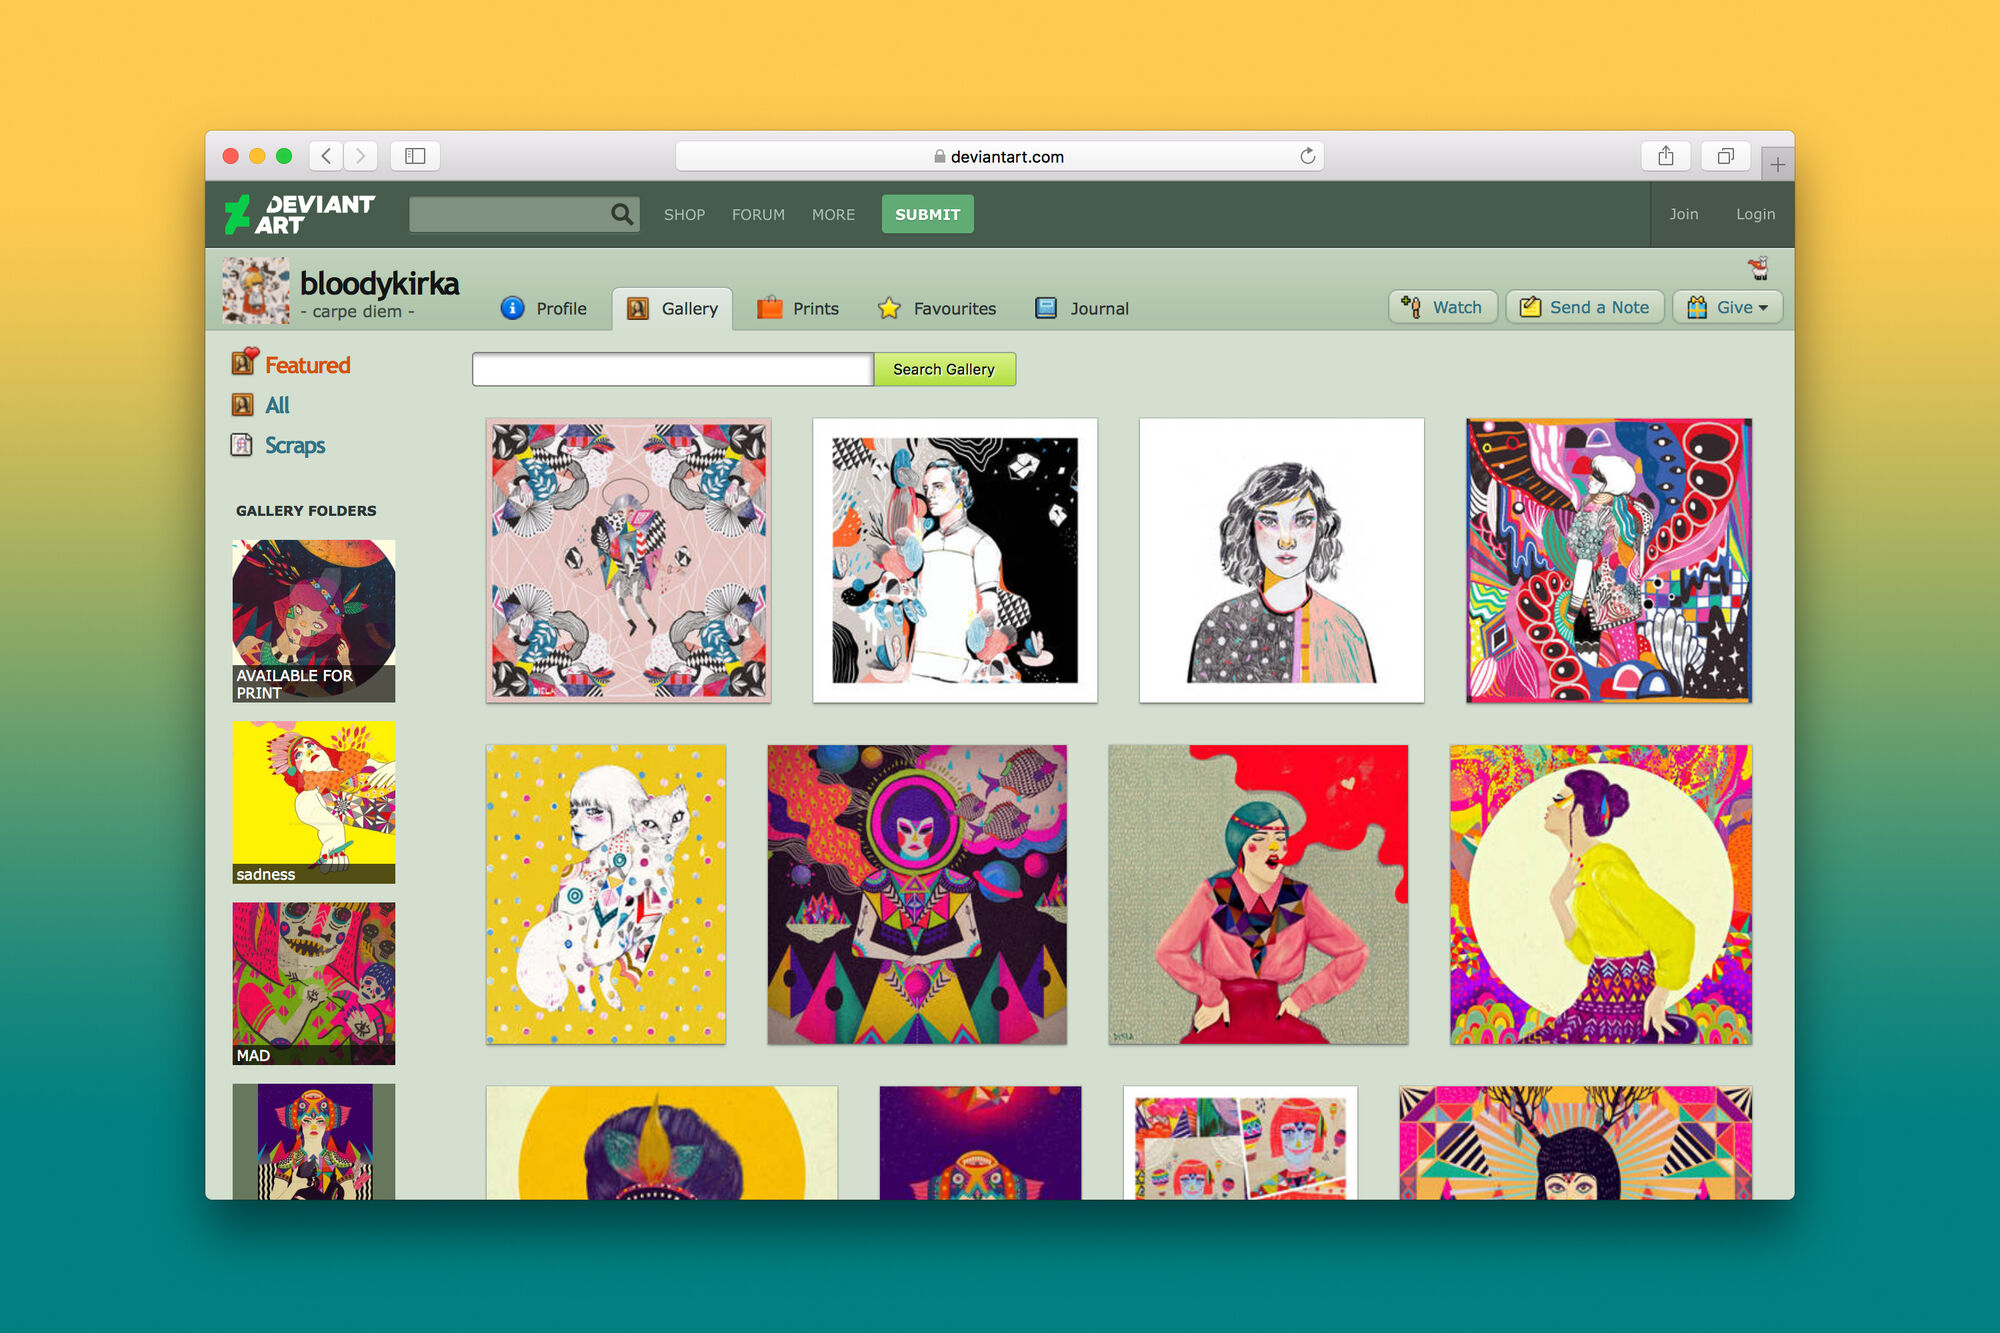 Screenshot of the DeviantArt interface, 2019. Used with permission from DeviantArt.